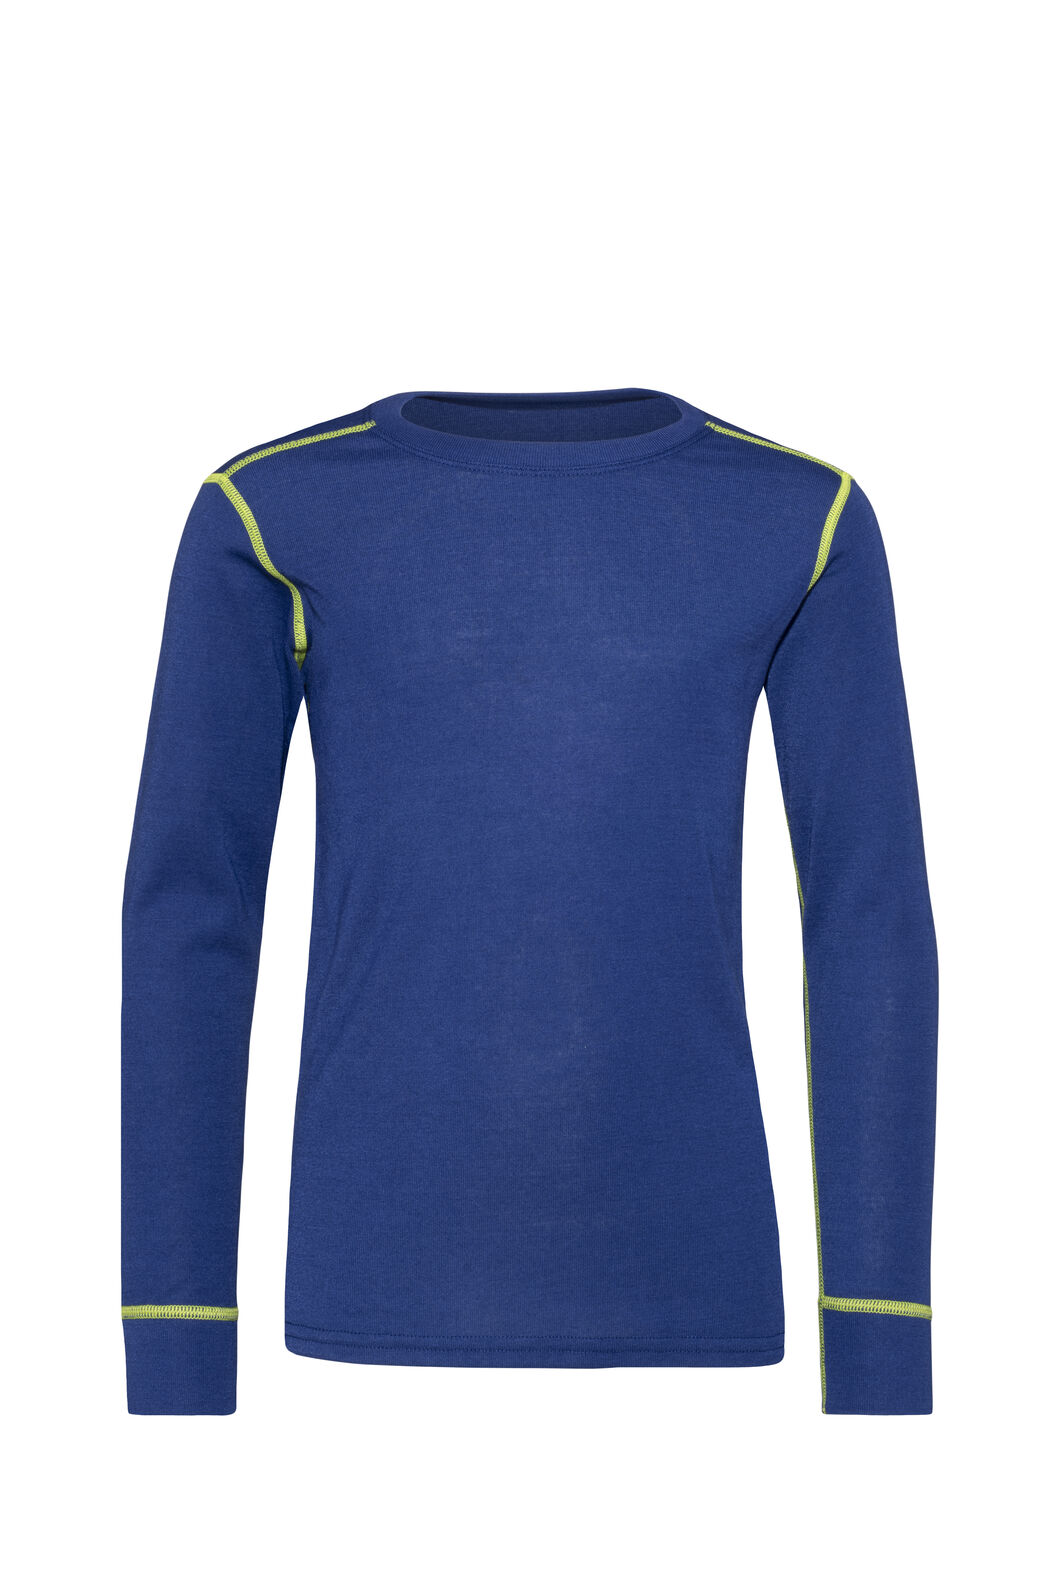 Macpac Geothermal Long Sleeve Top — Kids', Blueprint/Lime Green, hi-res